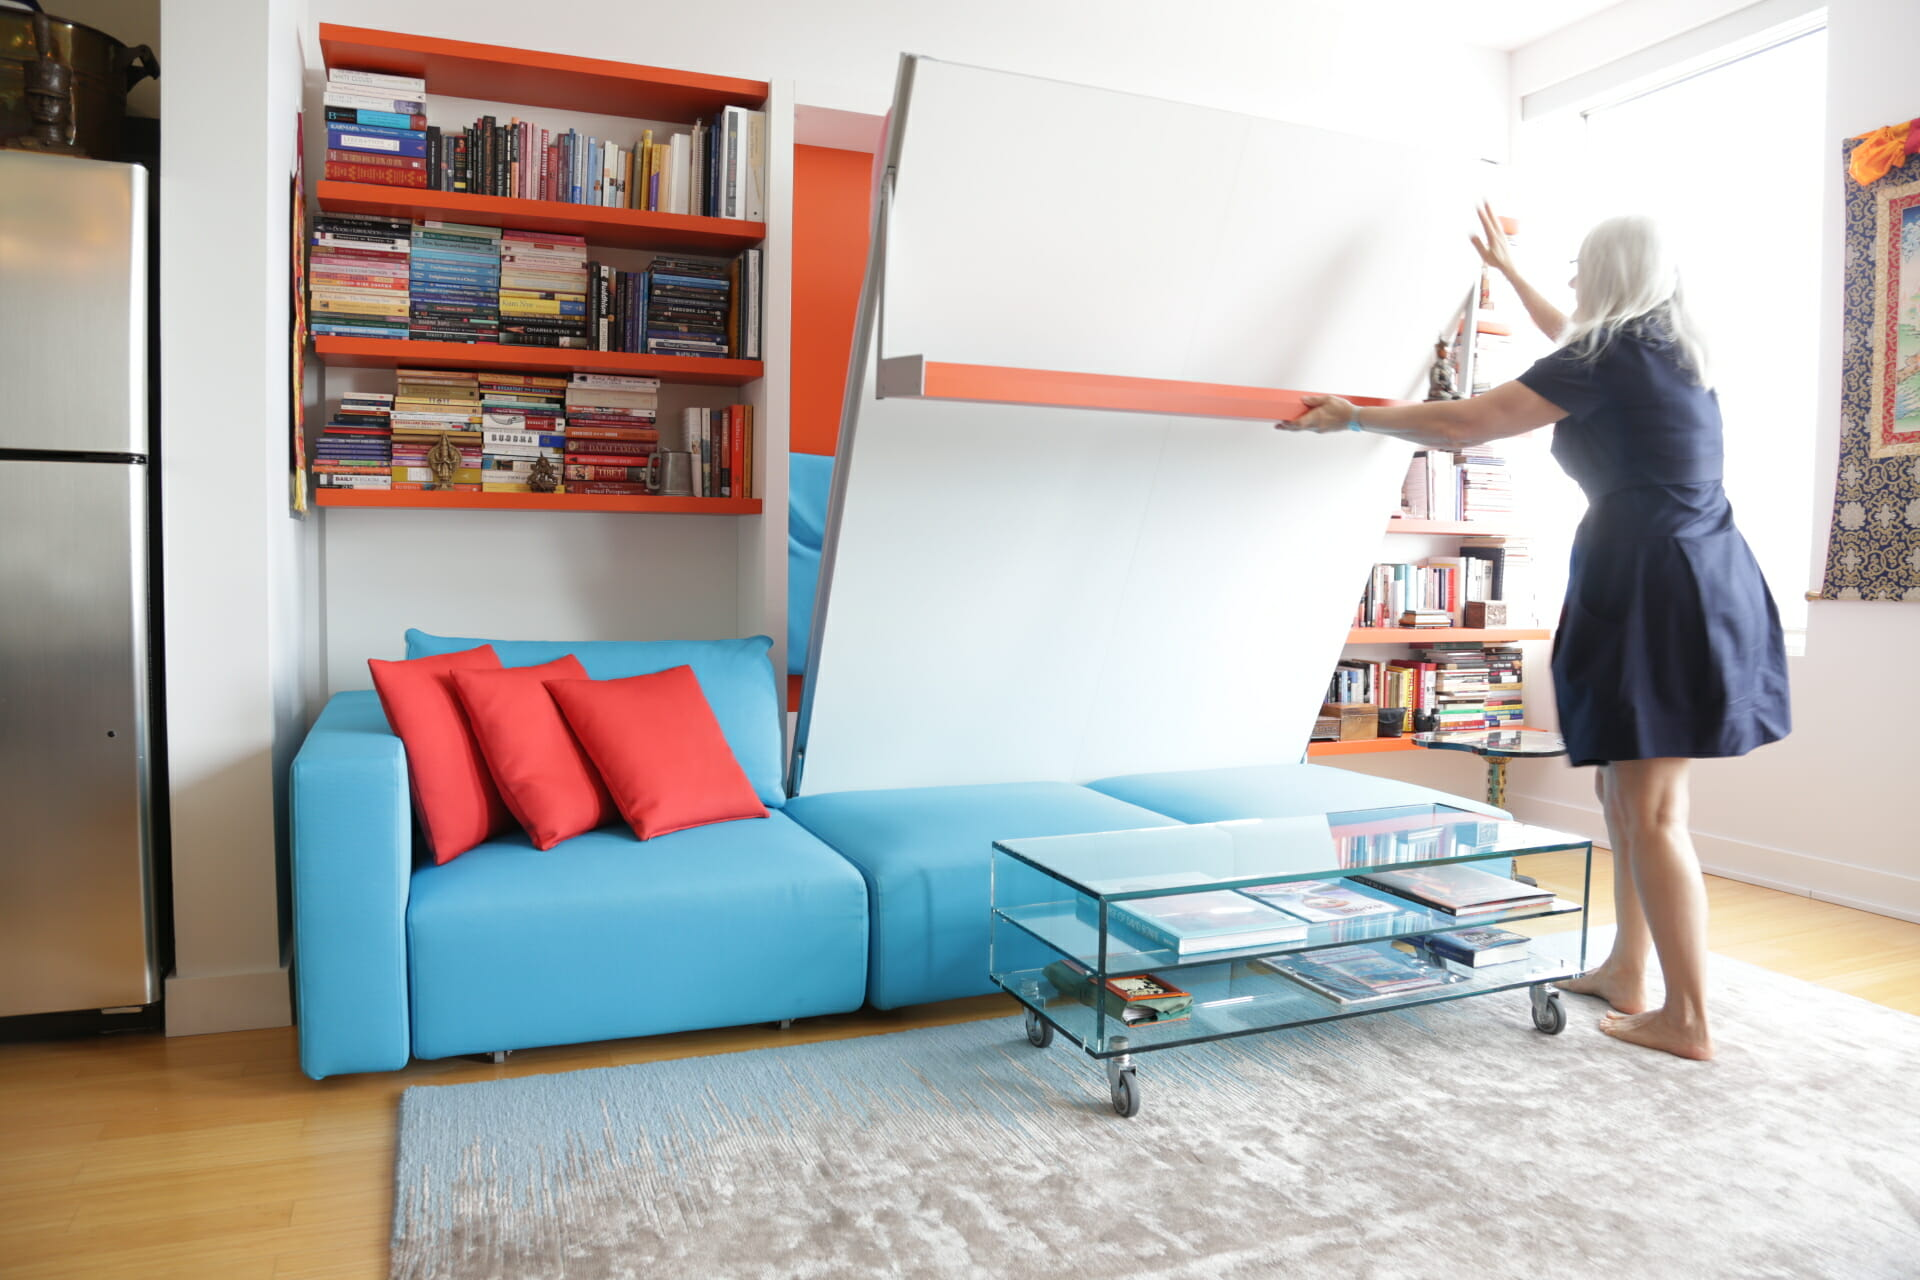 Van Duren demonstrates the ease of lowering the Swing, a queen-size wall bed with nine-foot sofa and sliding chaise. Here, it integrates with a shelving system, which continues the apartment's quirky motif of orange and blue.